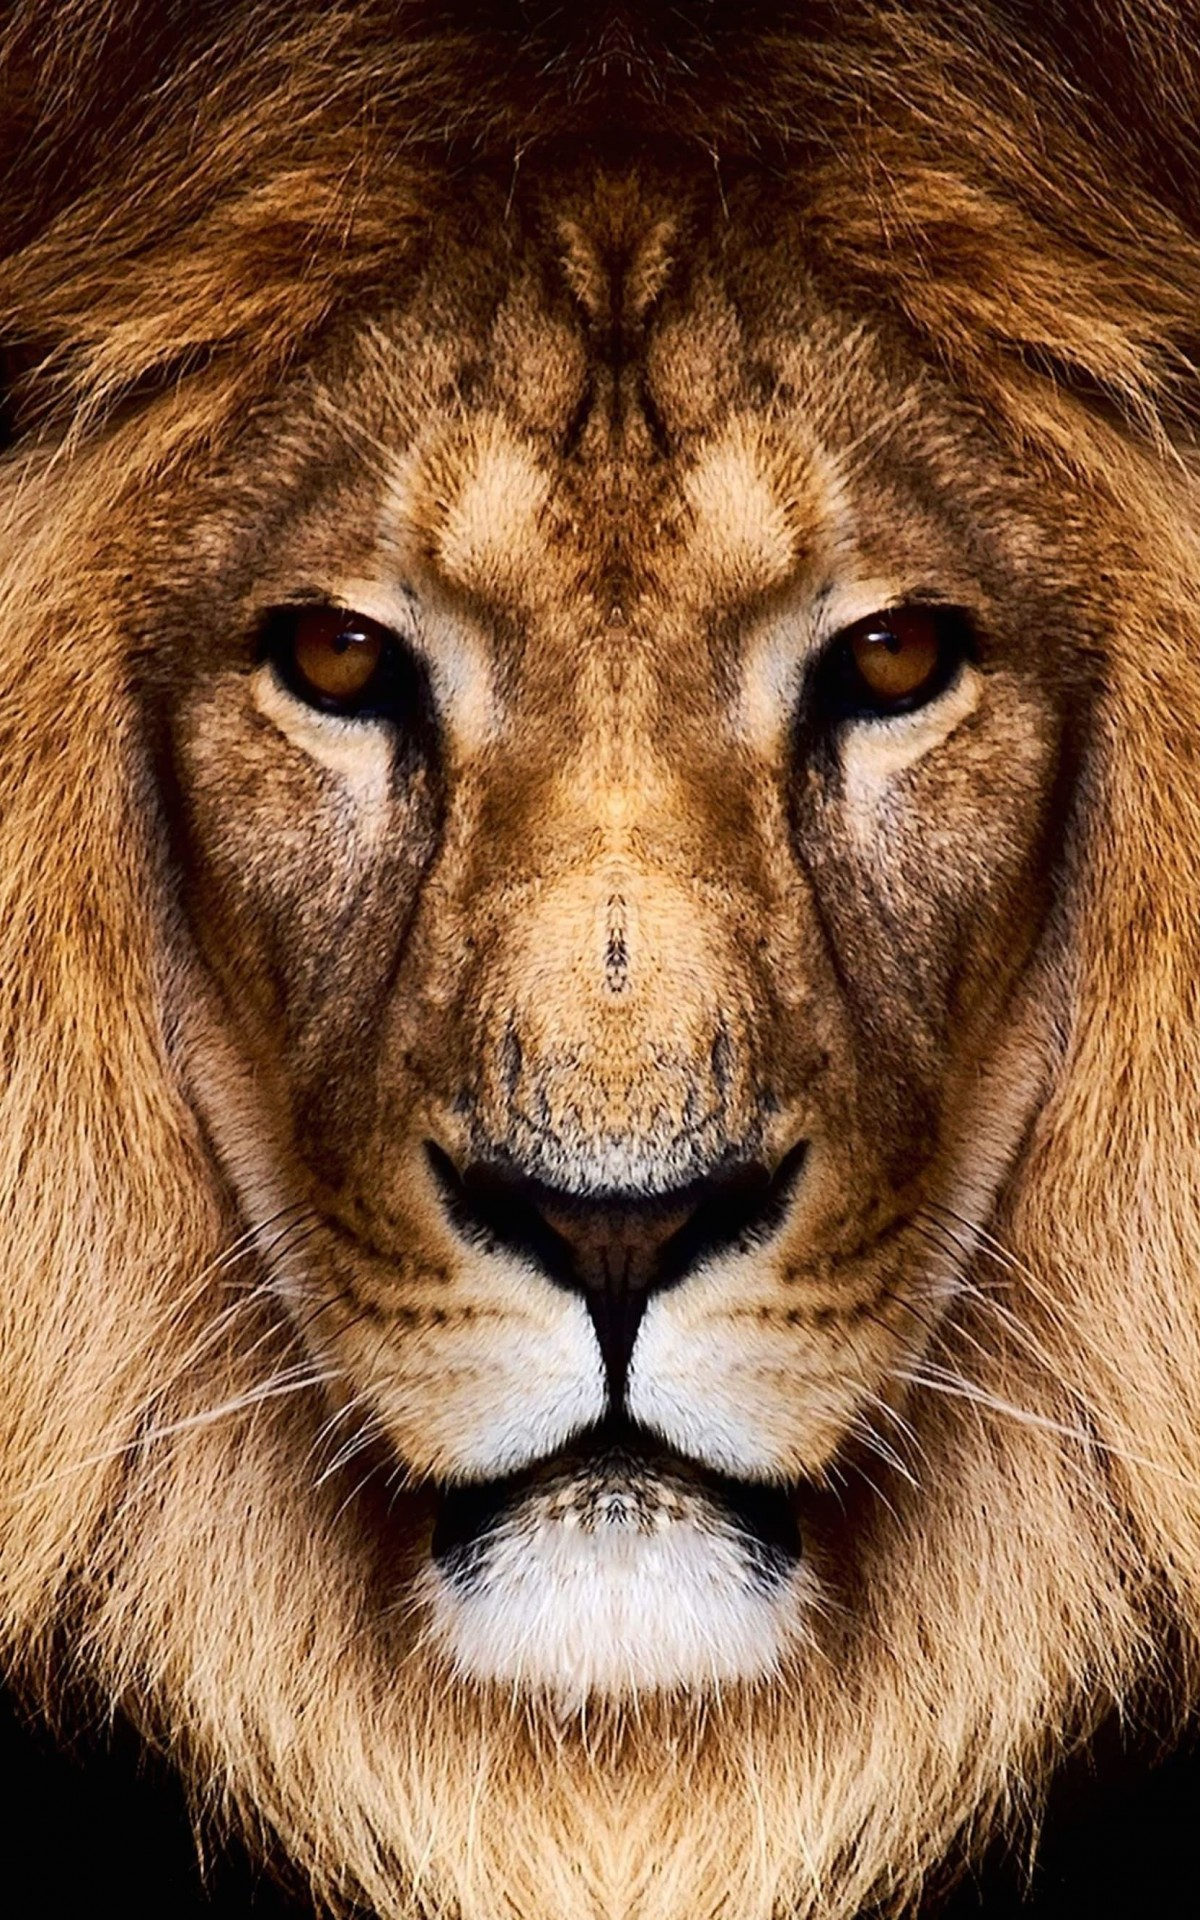 King Lion Wallpaper for Amazon Kindle Fire HDX